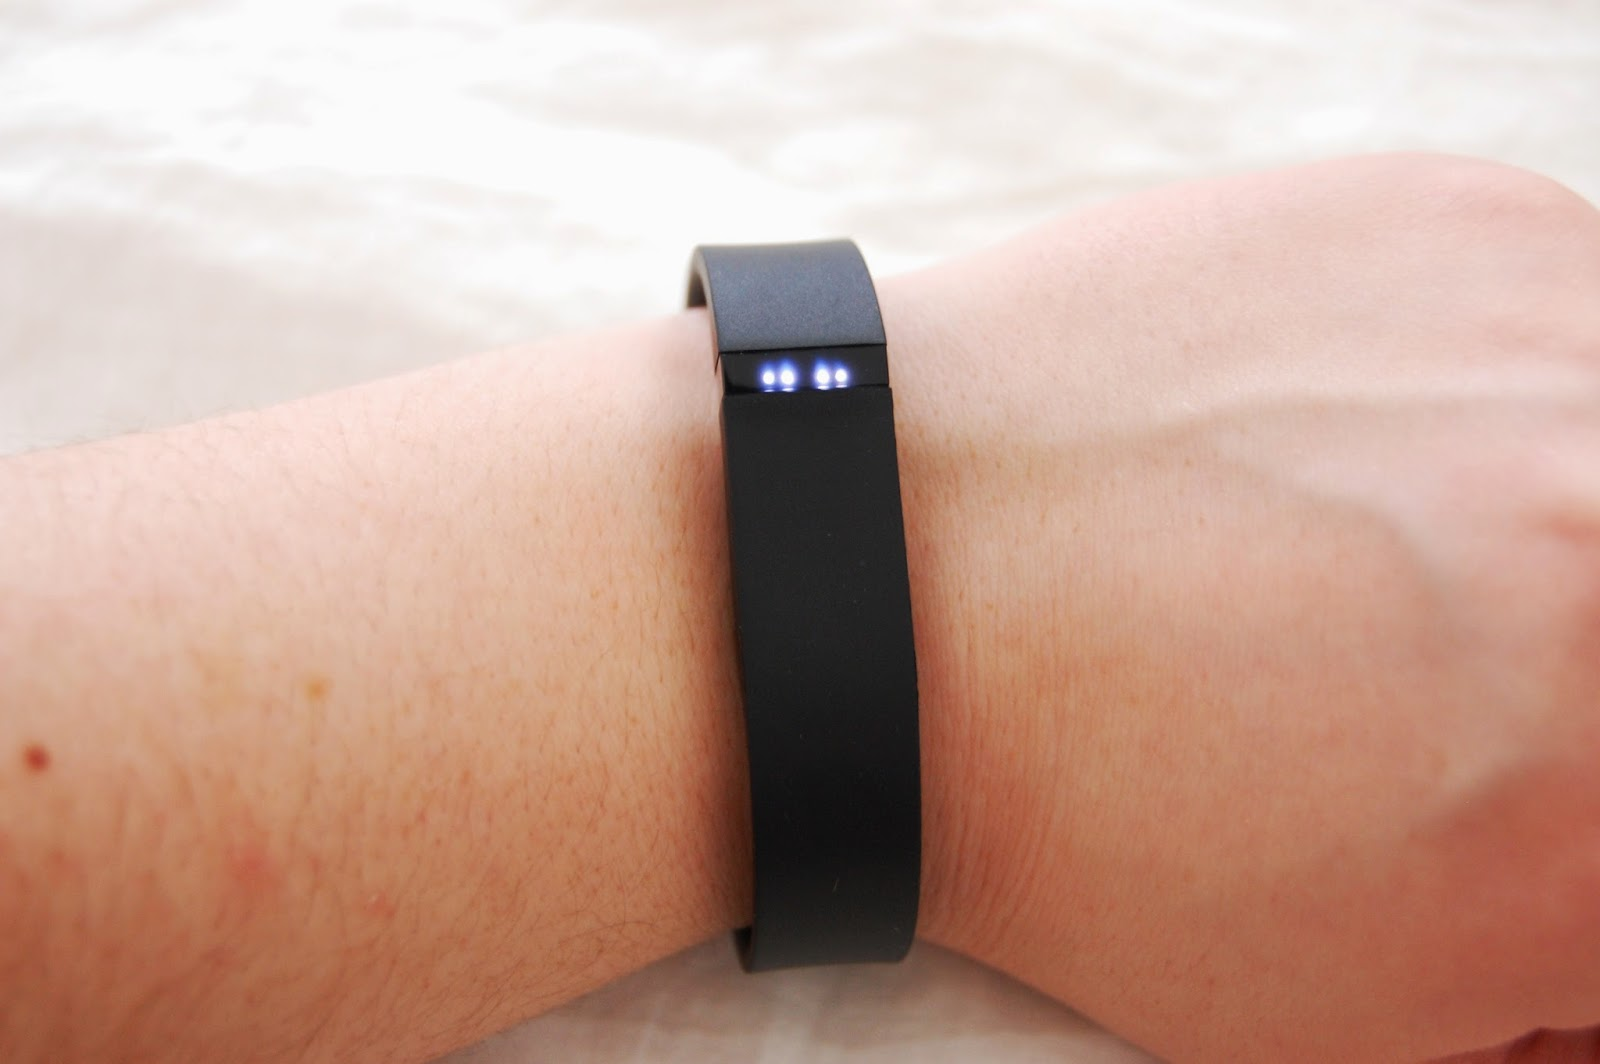 What Do 2 Flashing Lights Mean On The Fitbit | Share The ...